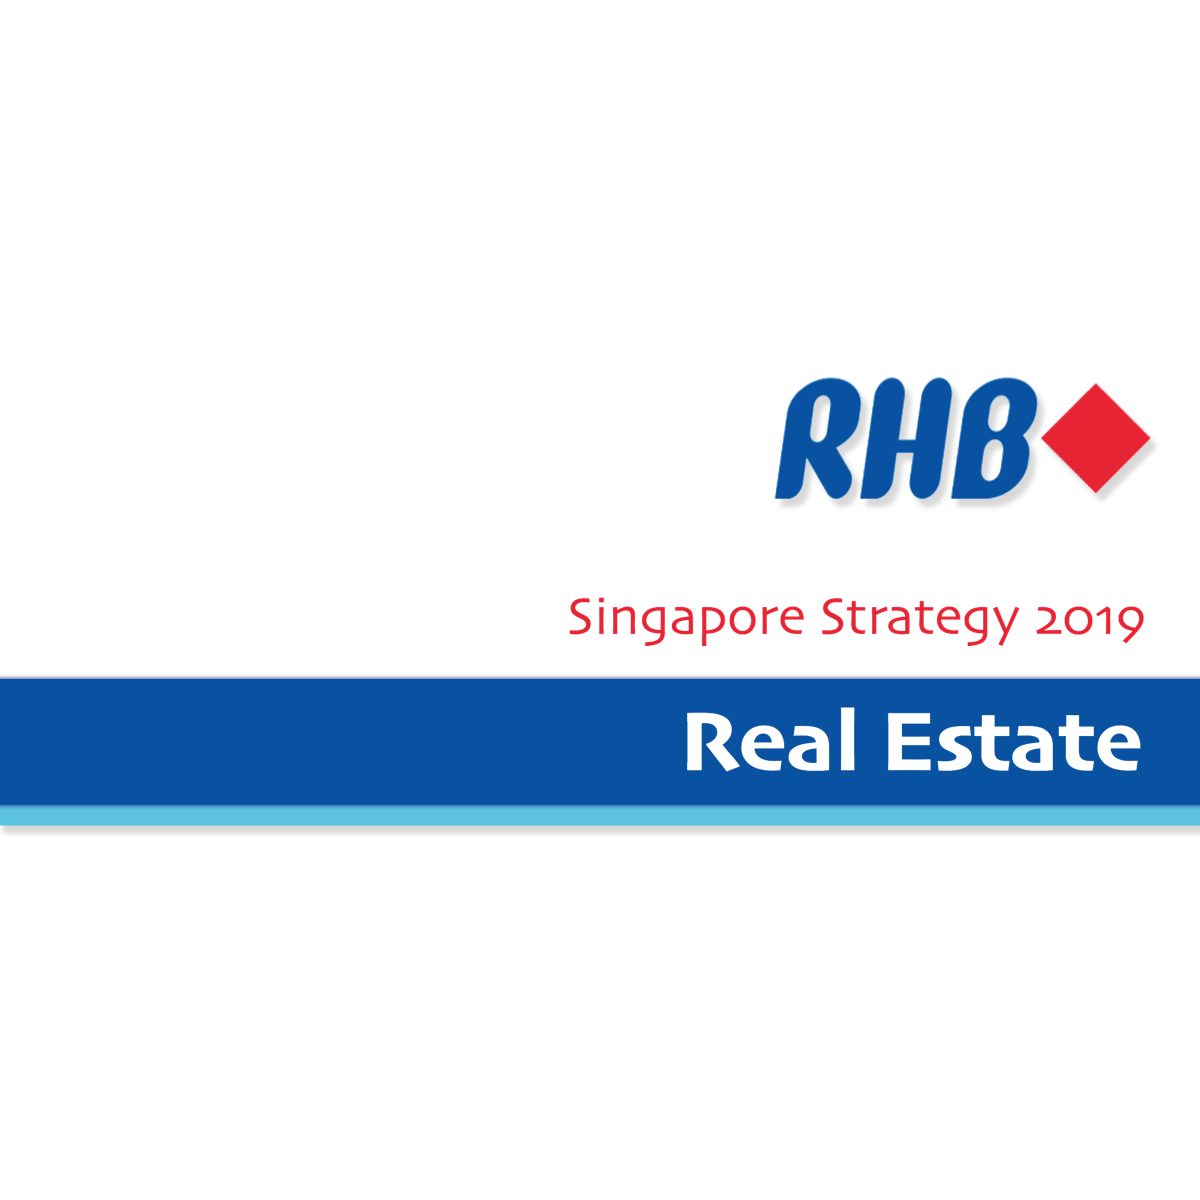 Singapore Strategy 2019 ~ Real Estate Sector - RHB Research | SGinvestors.io